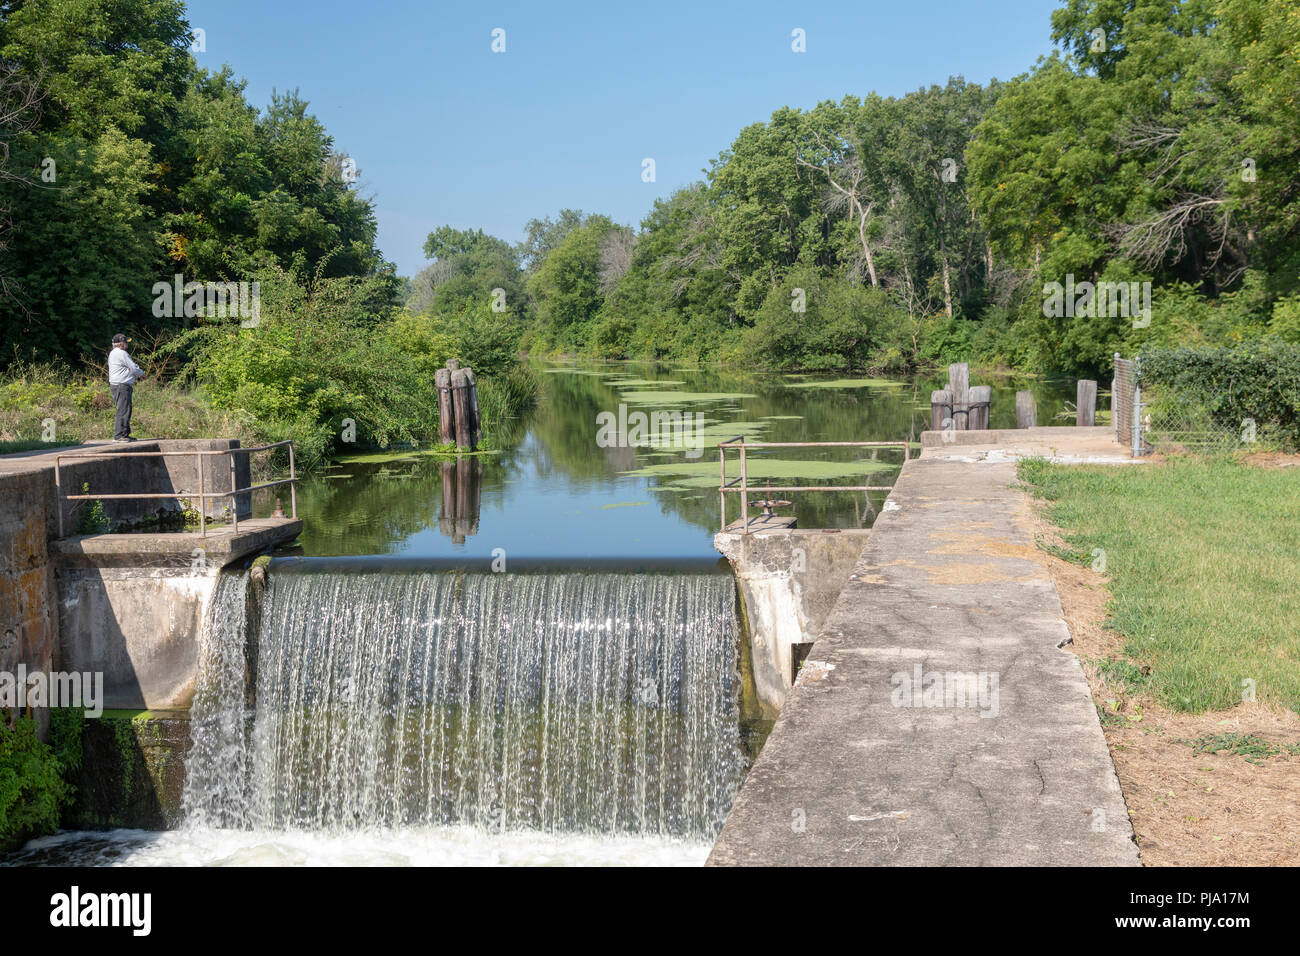 Wyanet, Illinois - A man fishes at Lock 21 of the Hennepin Canal. The canal was completed in 1907 to link the Illinois and Mississippi Rivers, but it  - Stock Image